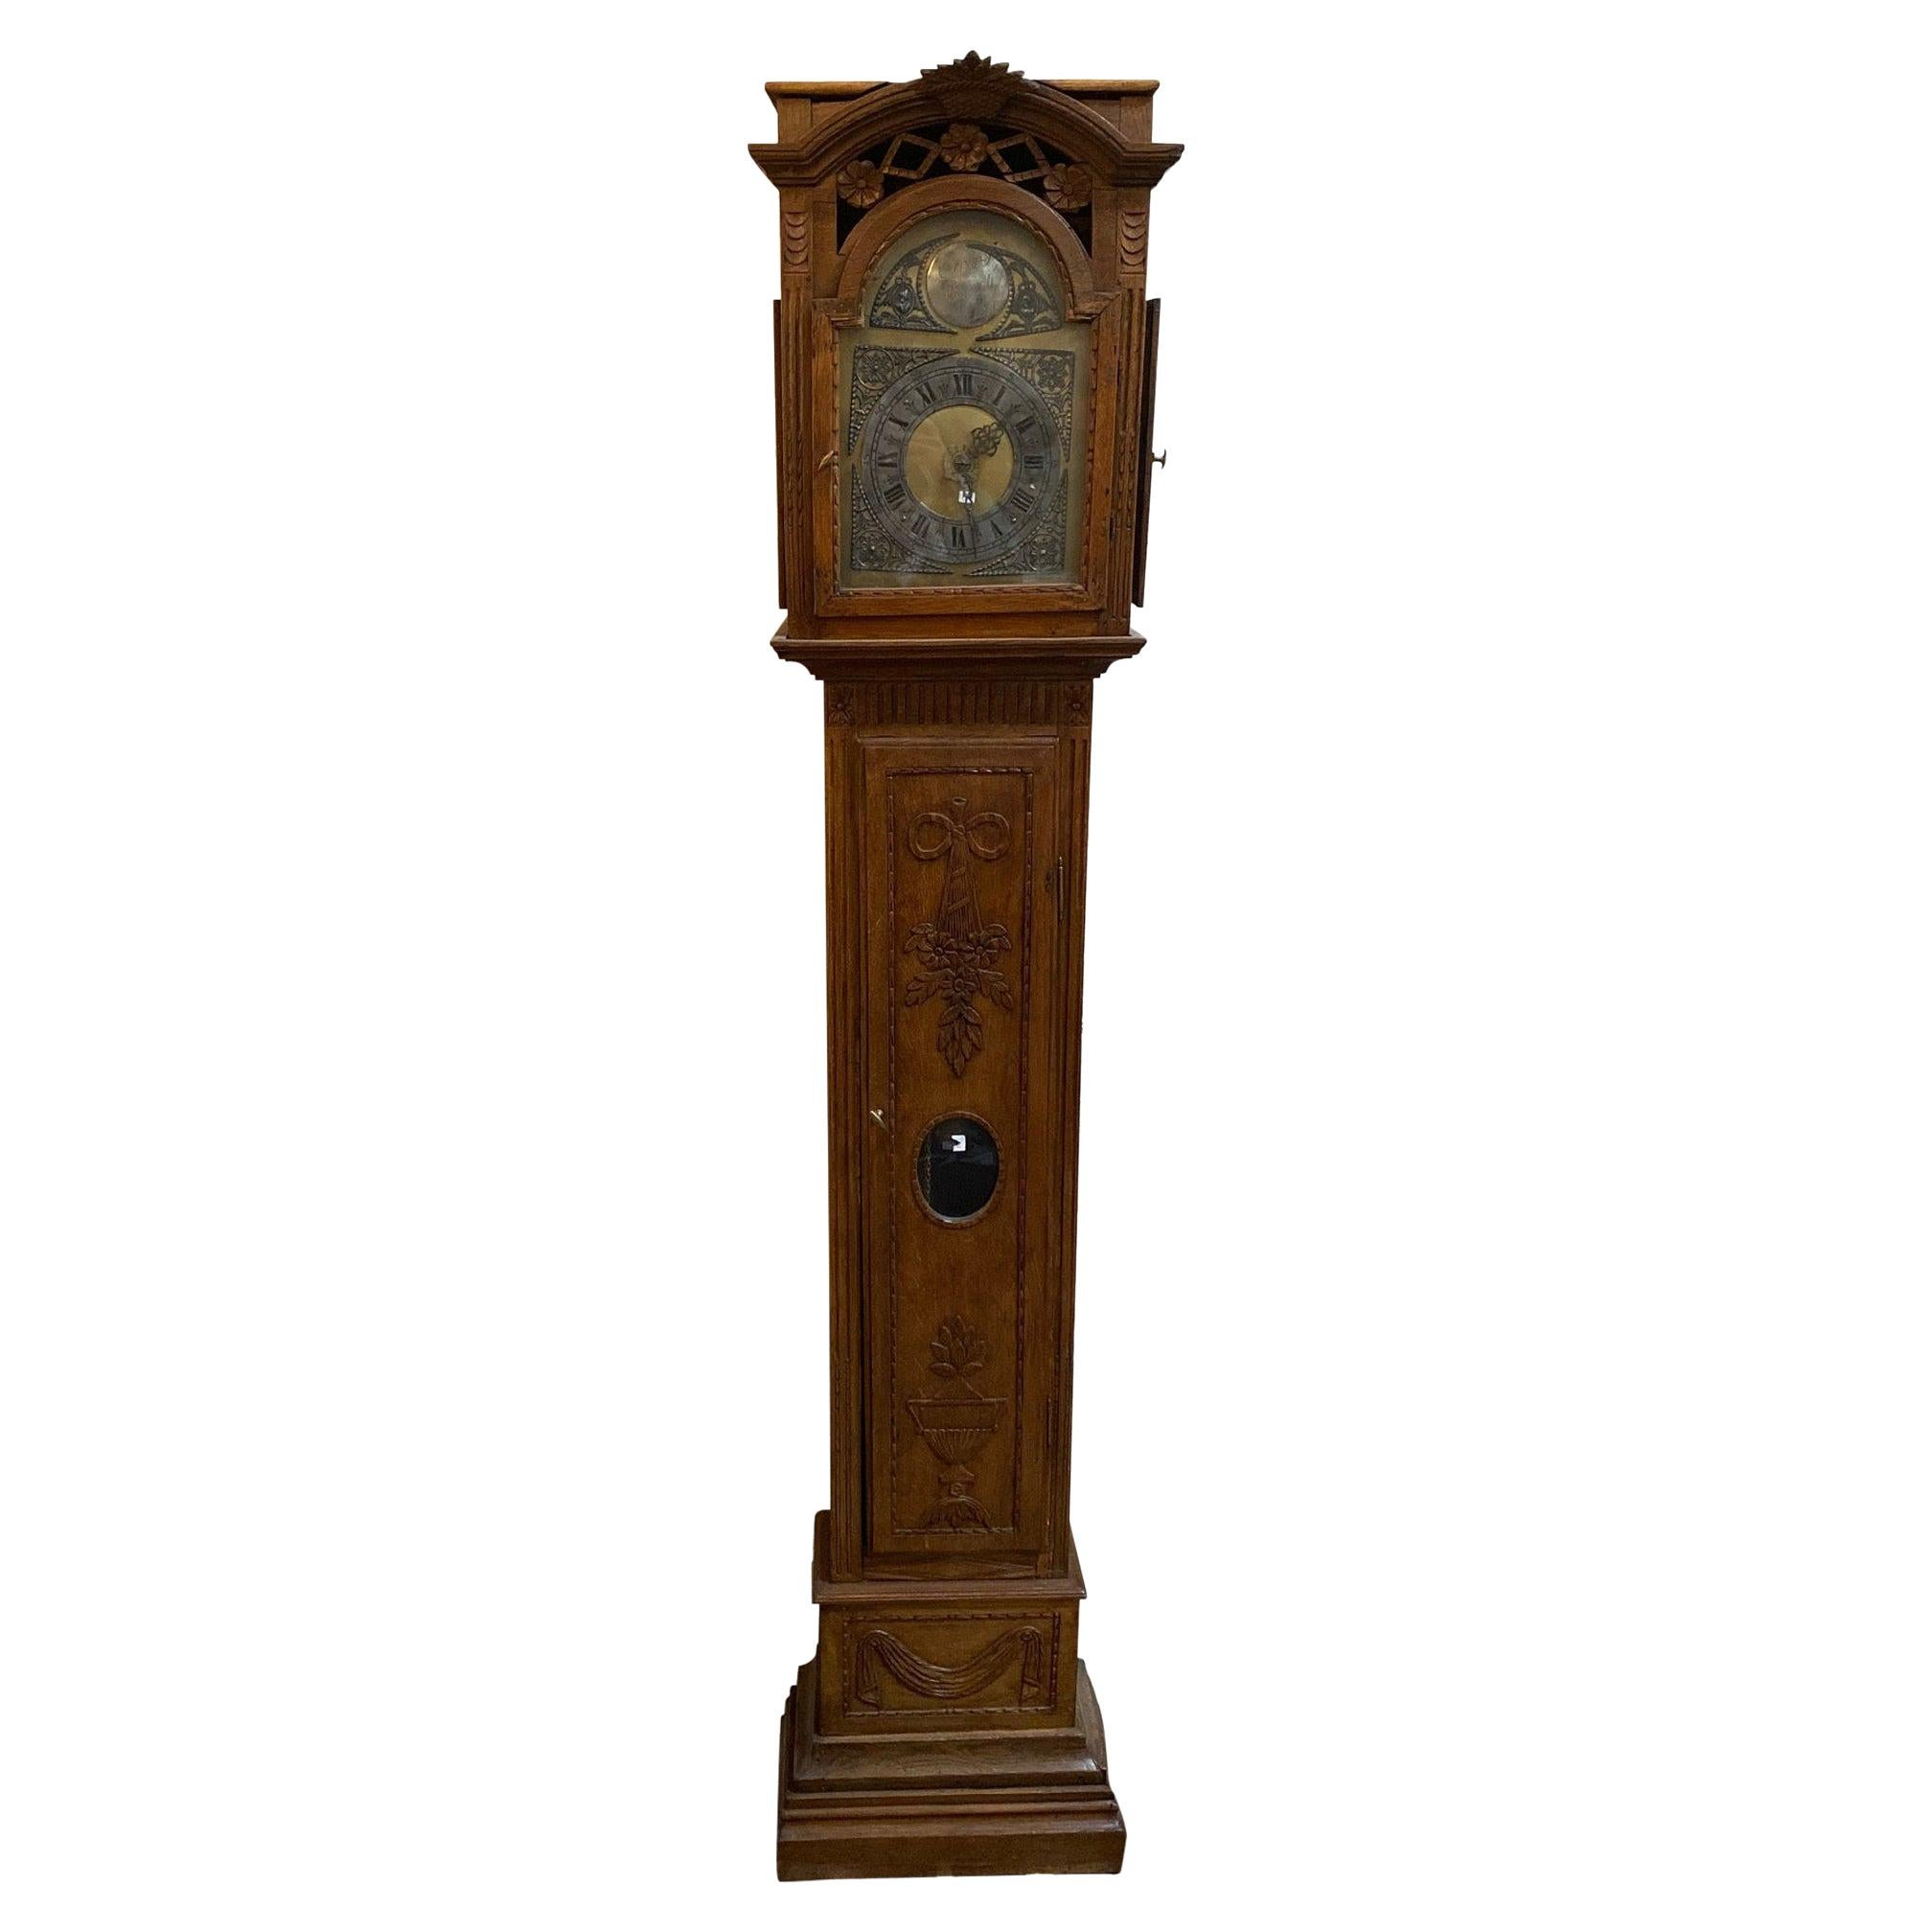 Antique Belgium Grandfather Clock, circa 1850